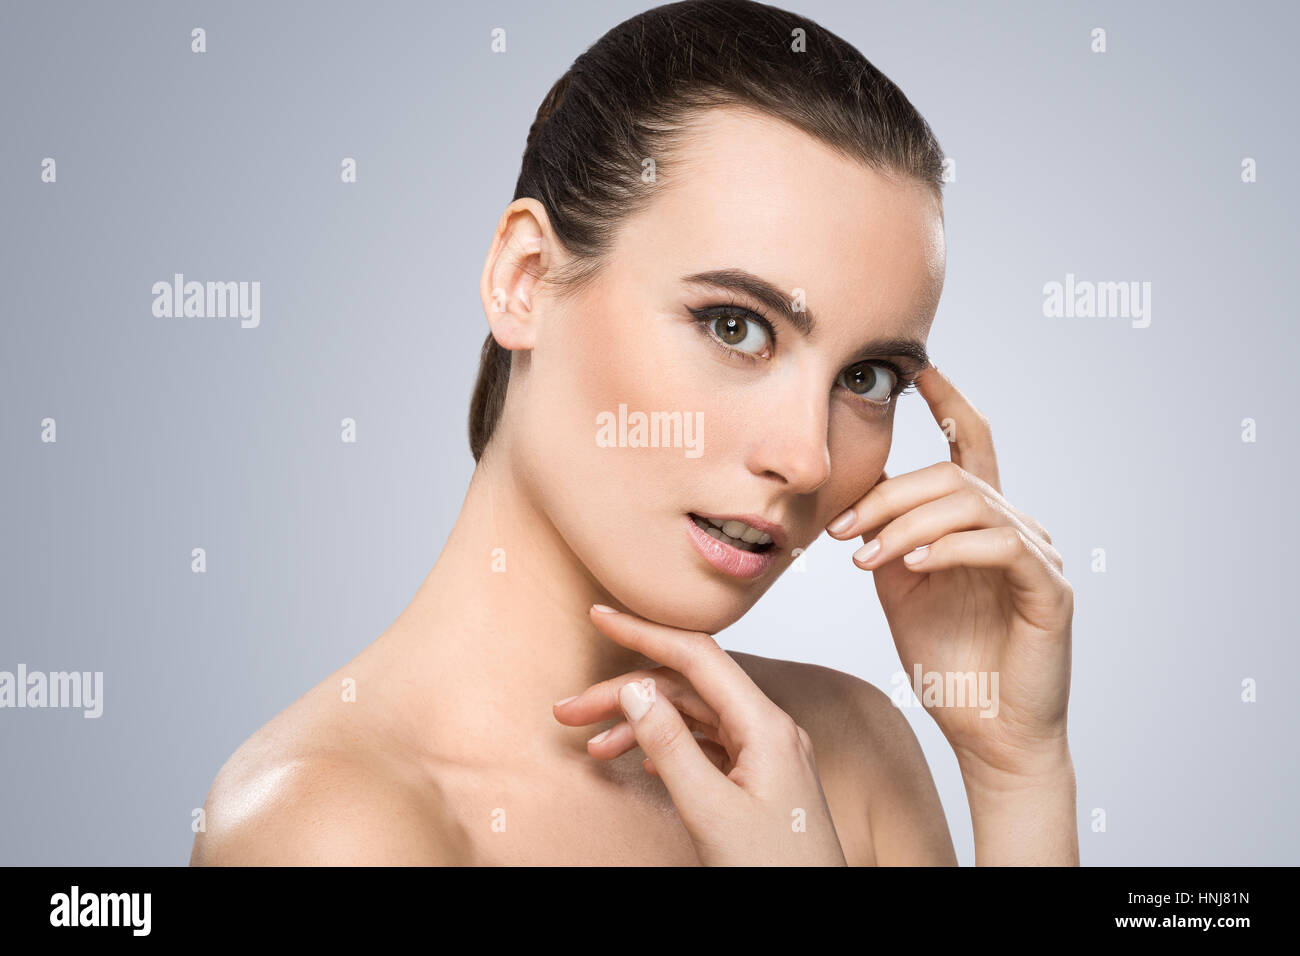 Model smiling surprisingly - Stock Image